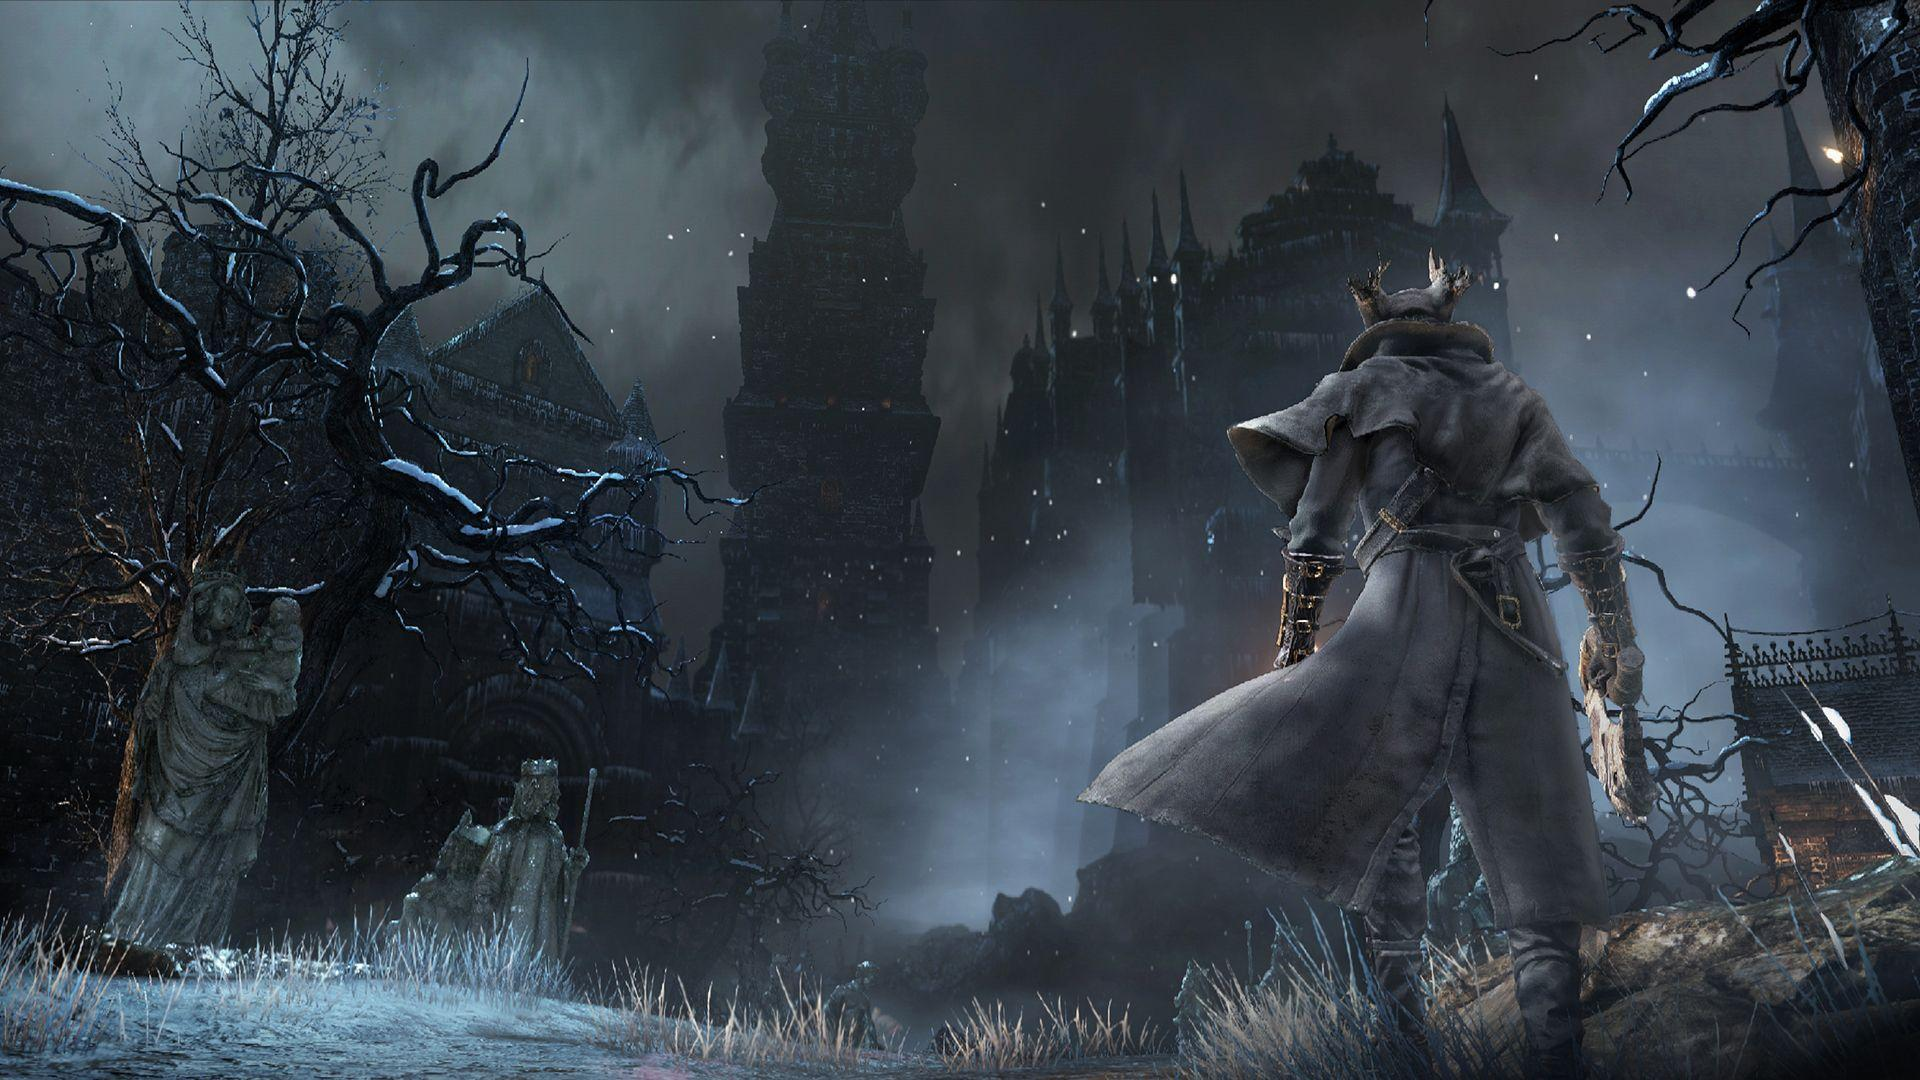 Bloodborne Wallpaper – The Perfect Wallpaper For Halloween